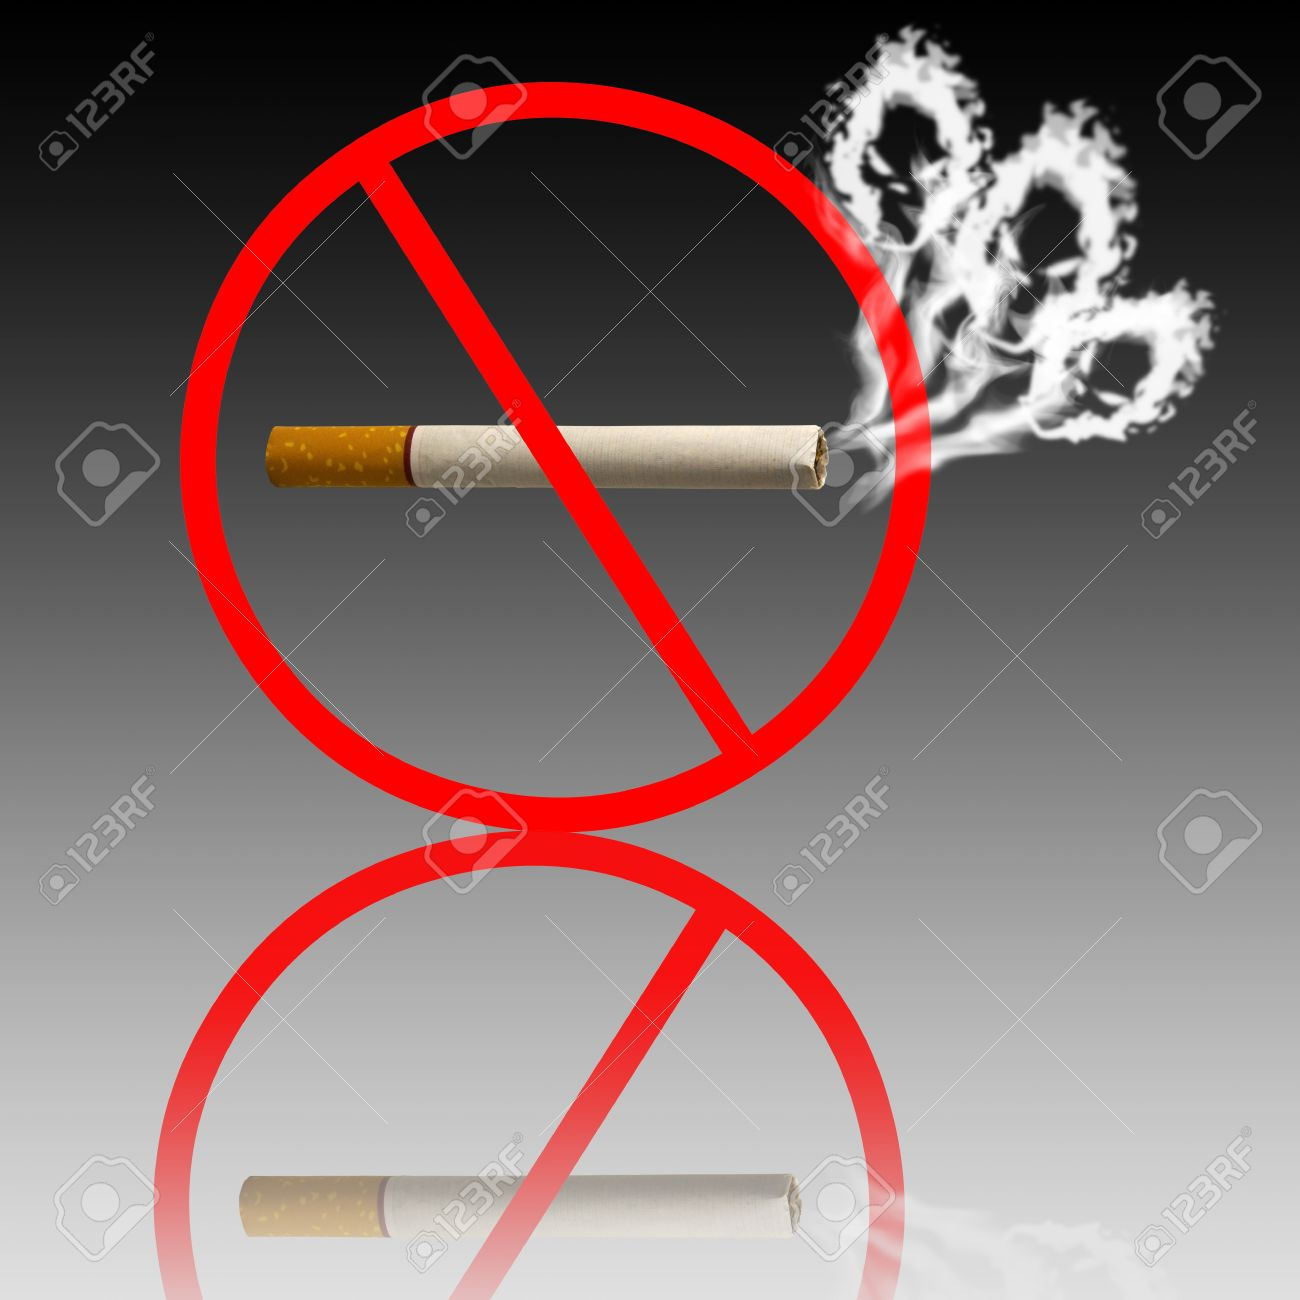 Do not smoke sign skull shaped smoke comes out from cigarette Stock Photo - 10714848